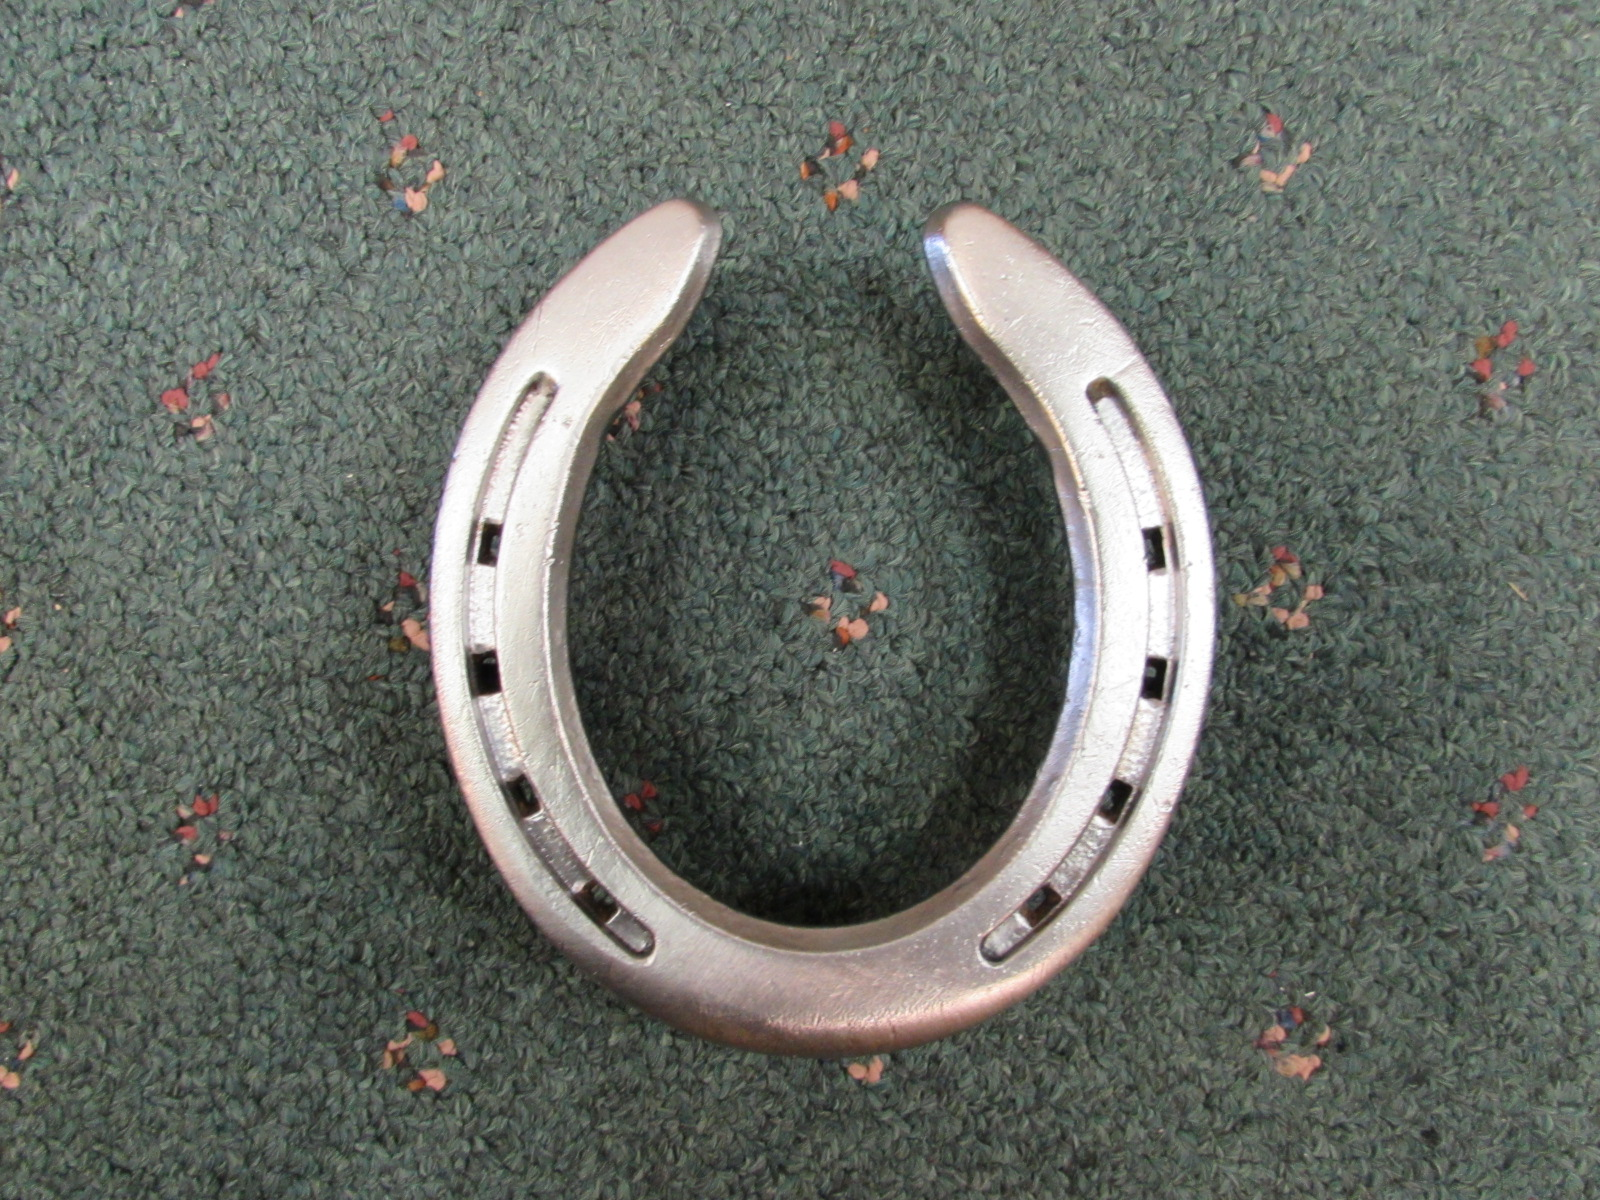 horse shoe dating Find great deals on ebay for diamond horseshoe ring in fine jewelry diamond rings shop with confidence.